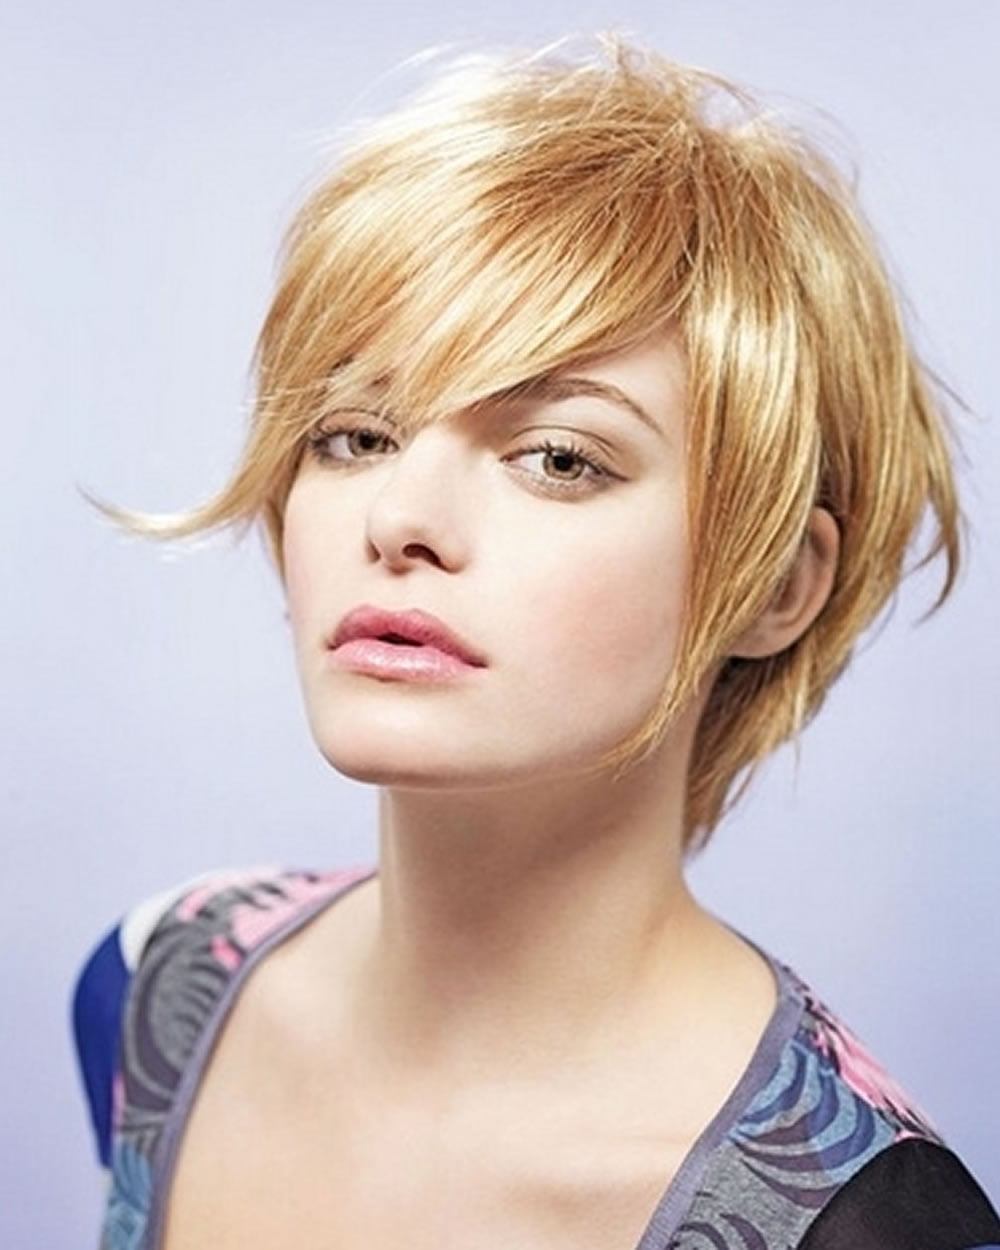 25 Trendy Short Hair Cut 2018 Bob Pixie Hair Styles For Ladies 2019 Page 2 Hairstyles